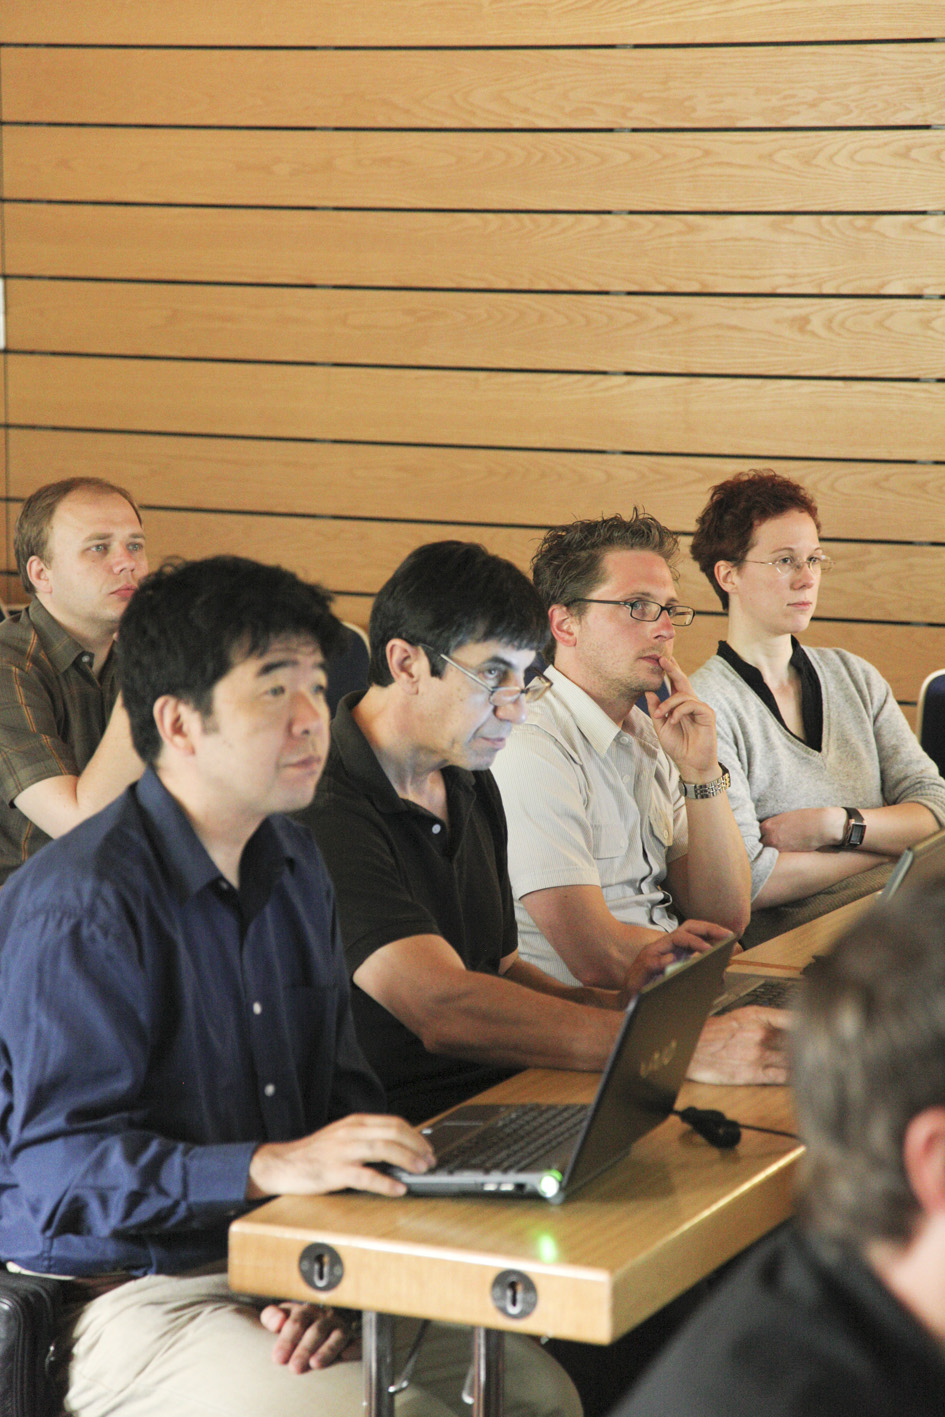 Participants listen attentively at the workshop on linac operation with long bunch trains, held at DESY from 6-8 June. Image: DESY